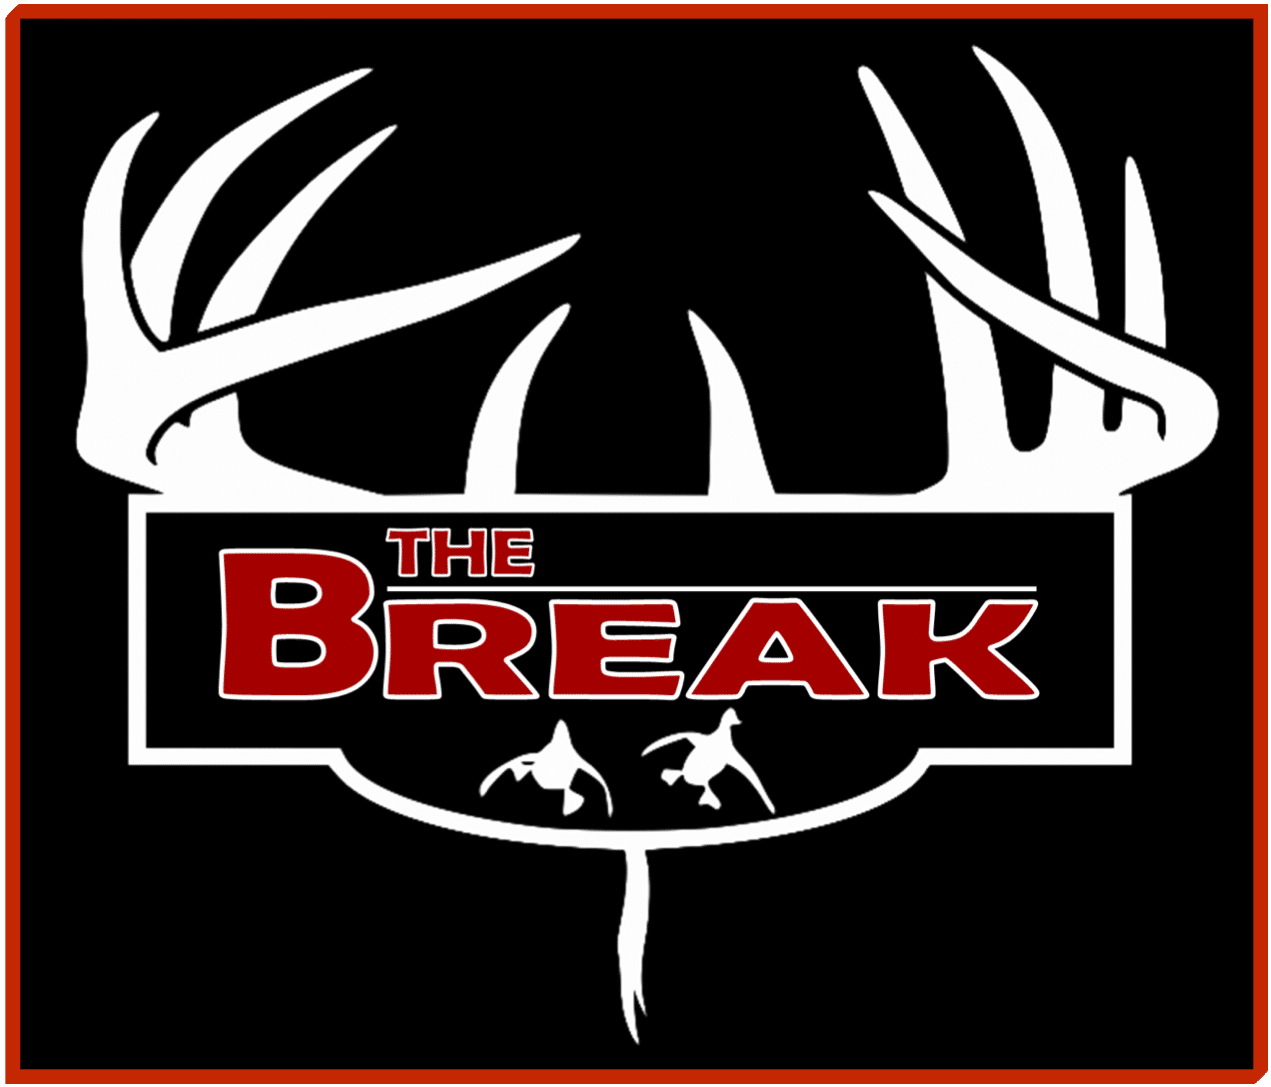 https://i0.wp.com/banksoutdoors.com/wp-content/uploads/2017/08/The-Break-framed-logo-big.png?ssl=1